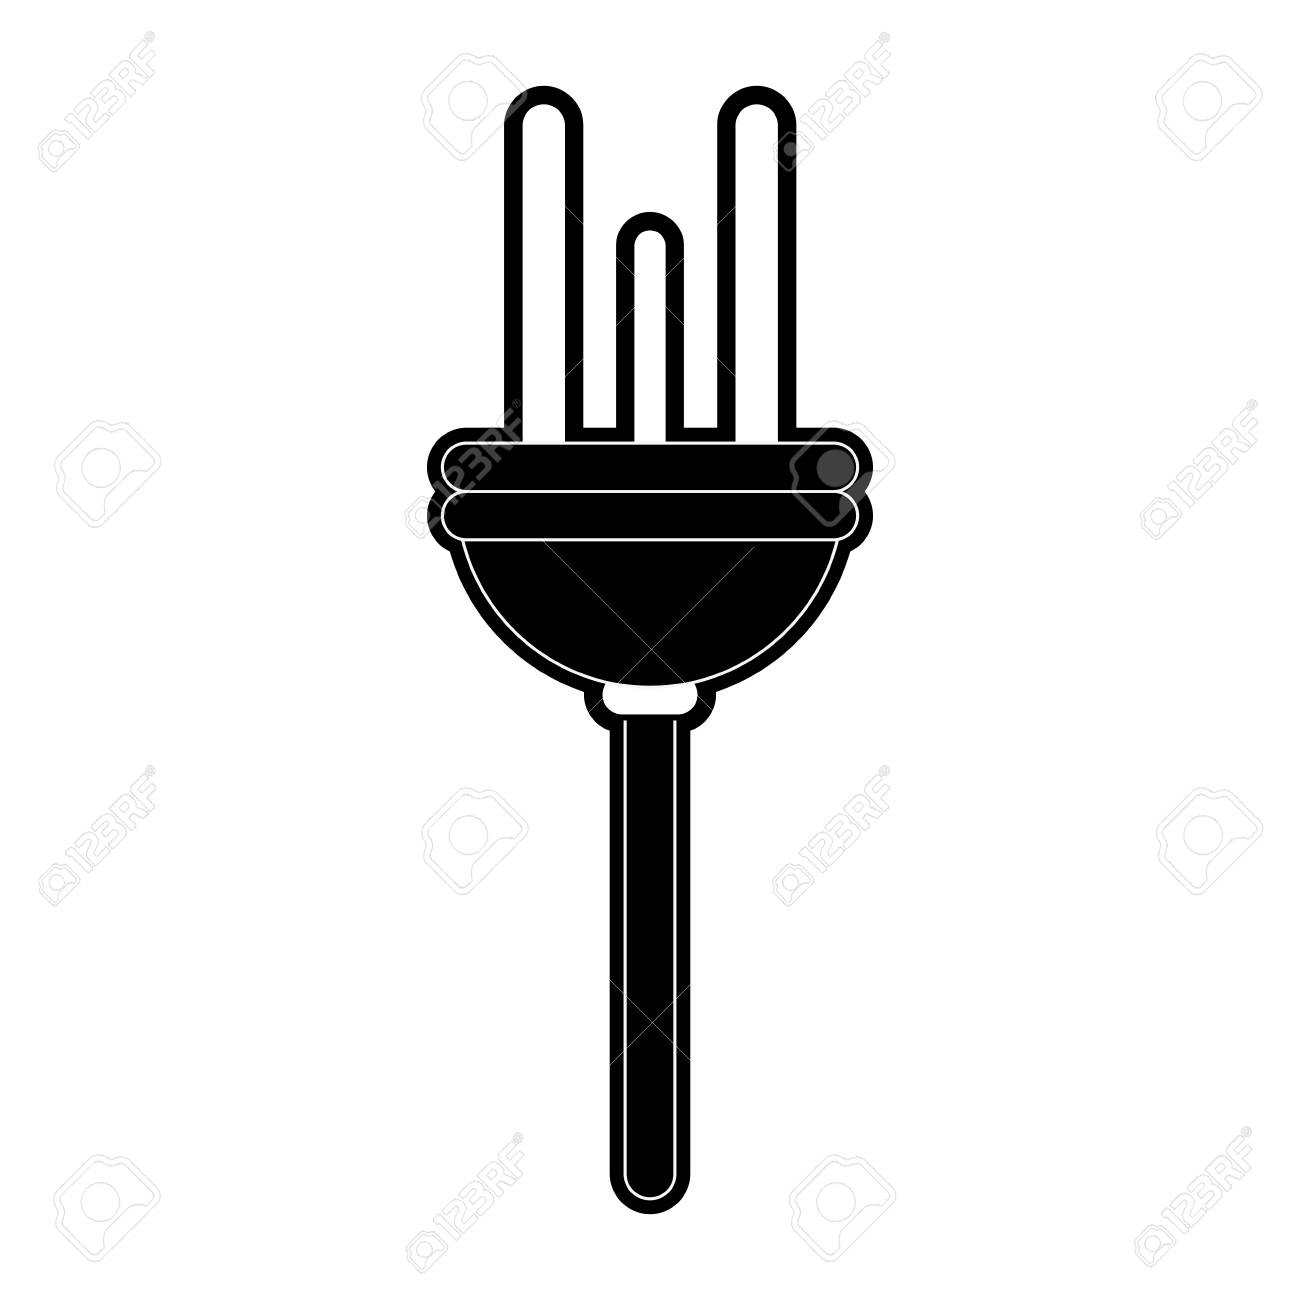 Electric Wire Energy Icon Vector Illustration Graphic Design Royalty ...